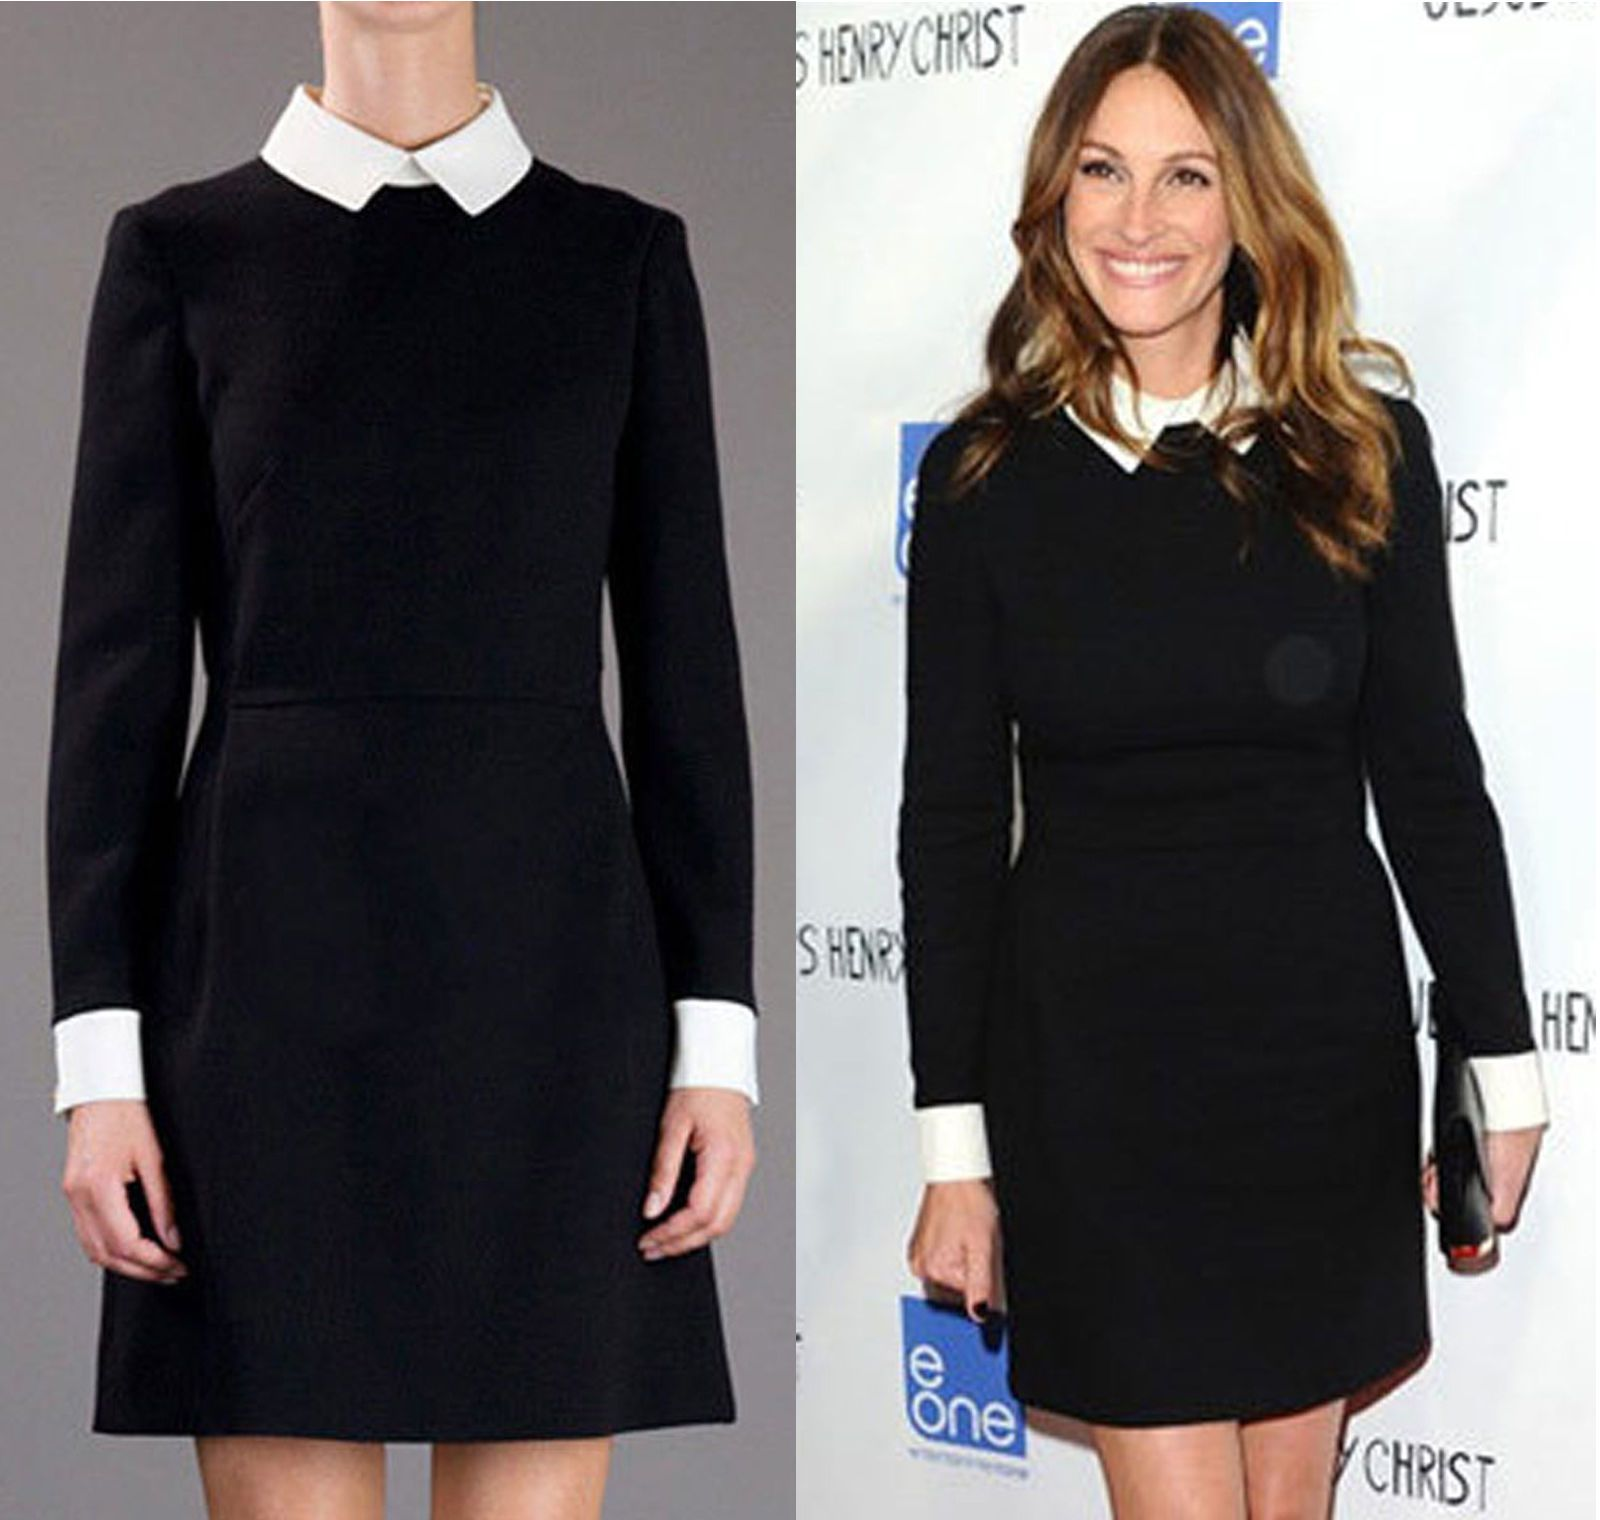 ef5a792812 Womens Black Block Shift White Collar Cuff Fit Long Sleeve Peter Pan Mini  Dress in Clothes